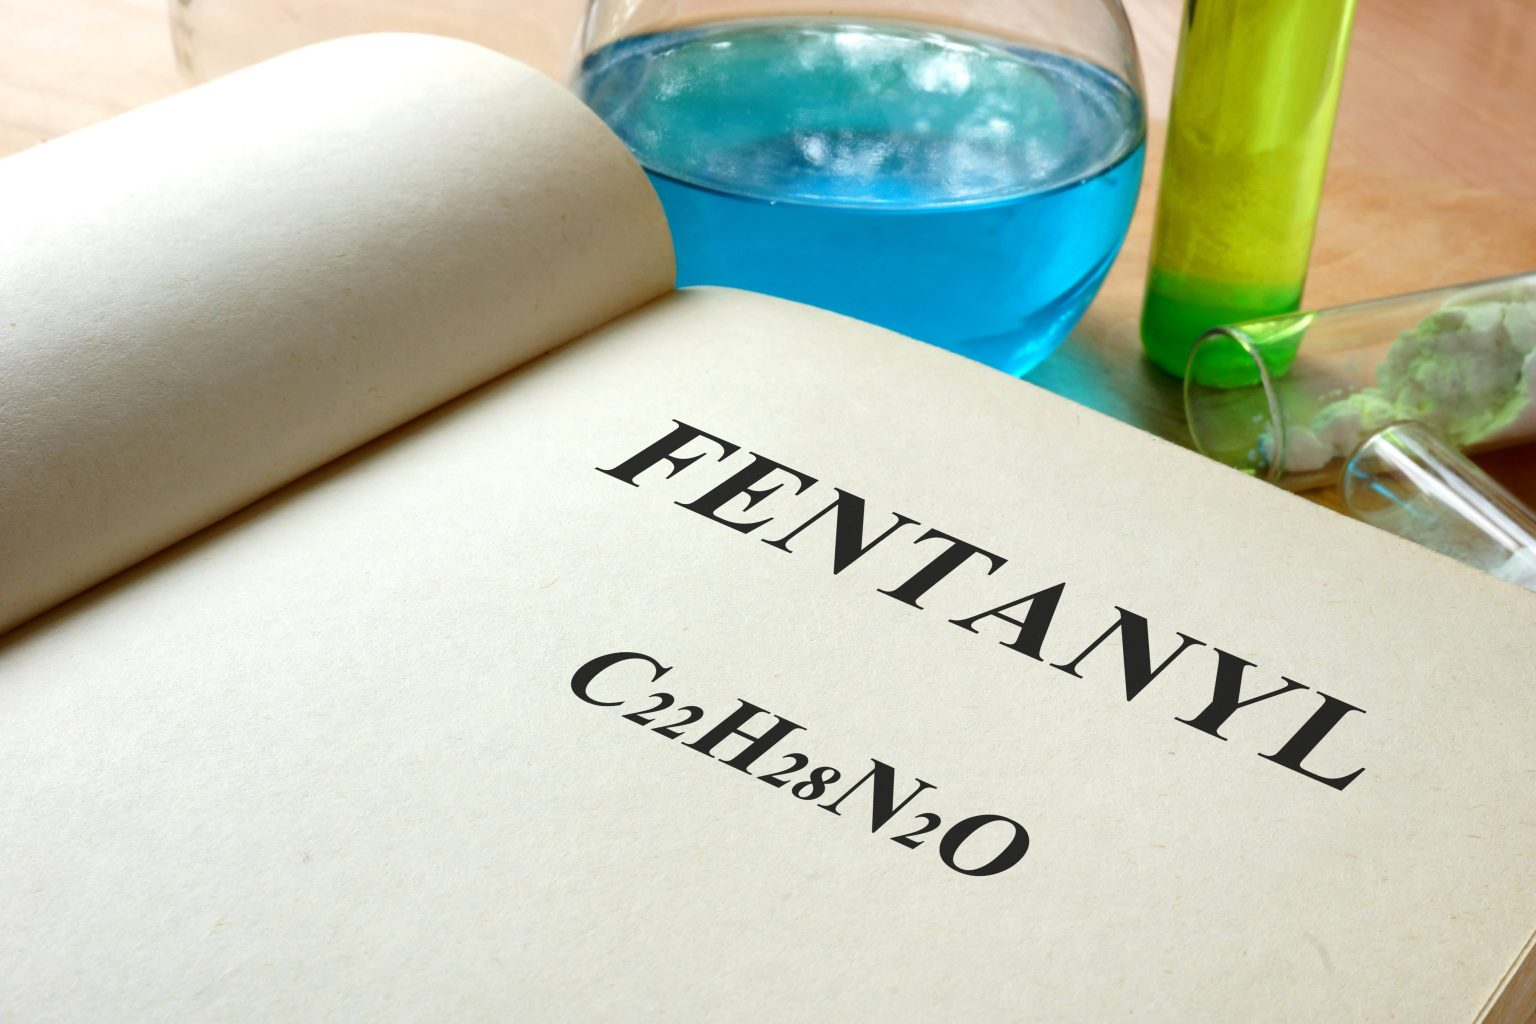 book open to page with fentanyl printed on it, test tubes next to the book